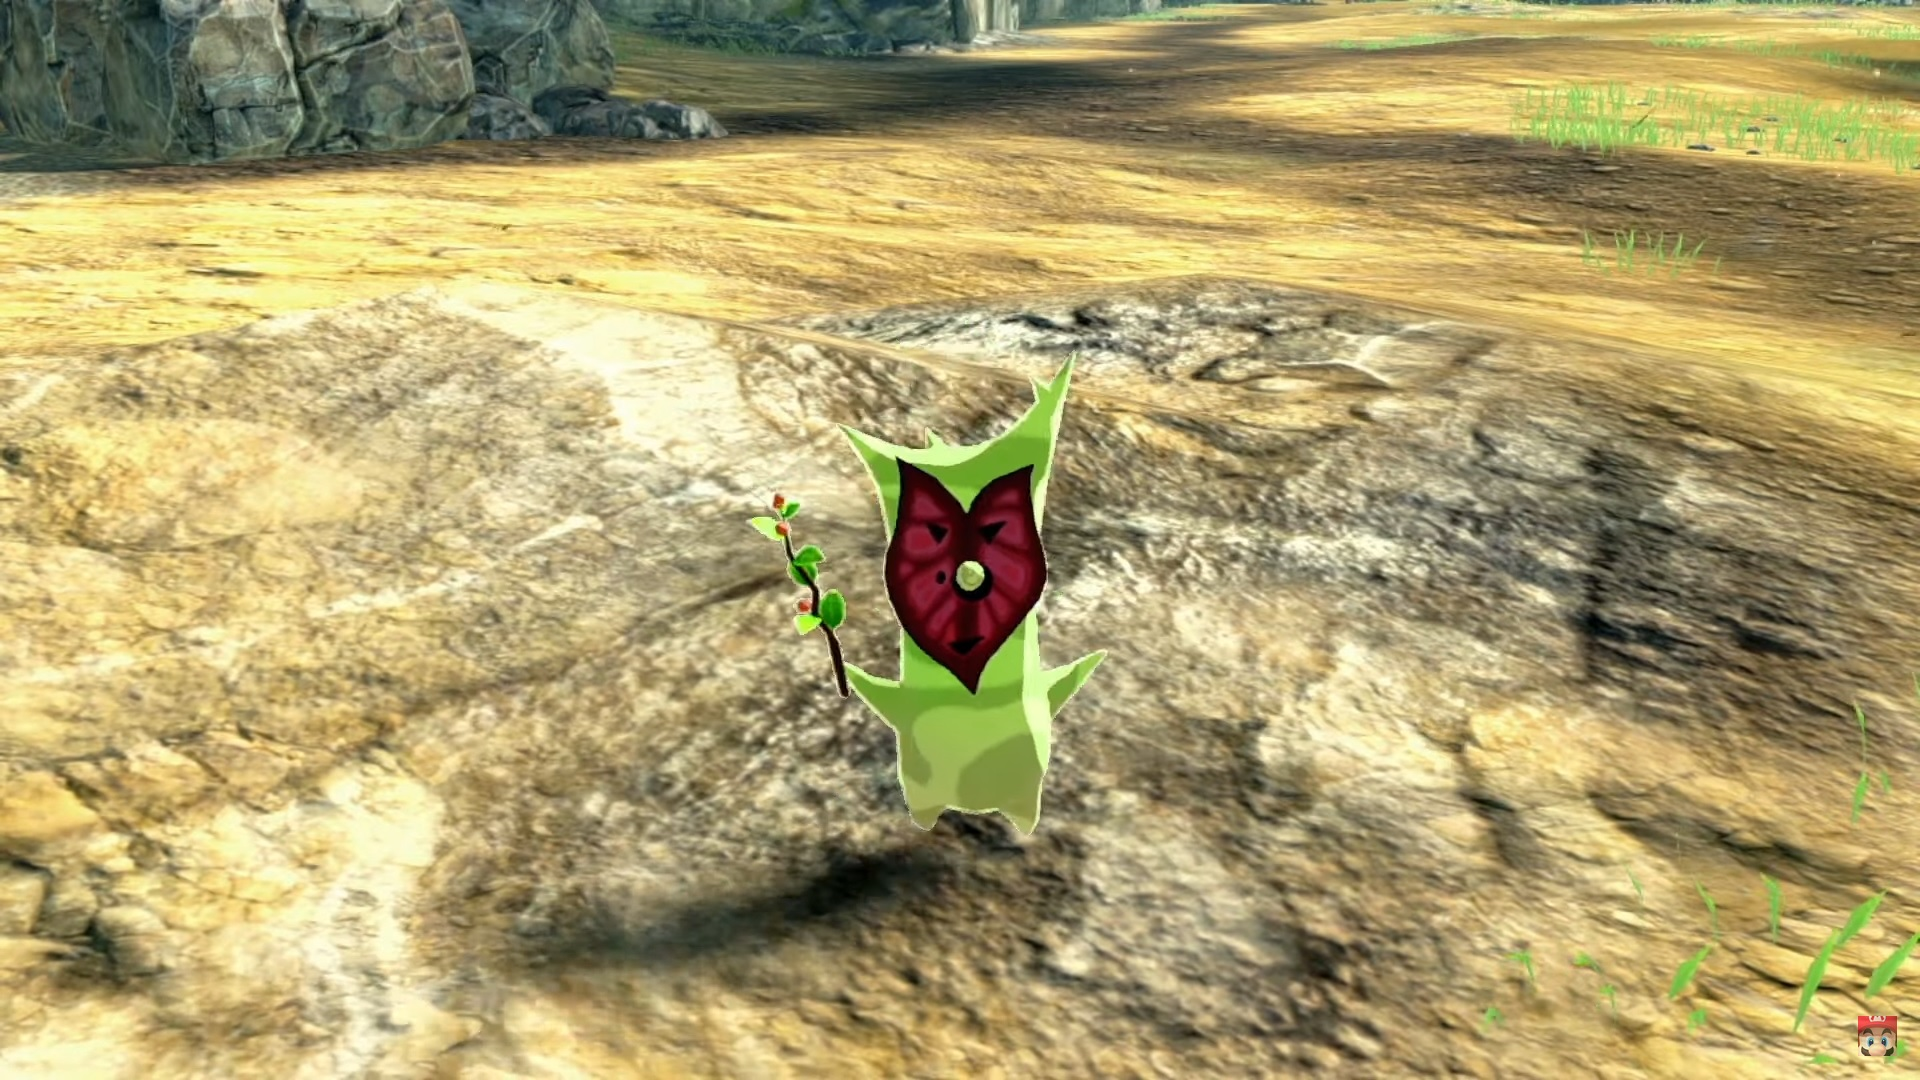 Hyrule Warriors: Age of Calamity Gets New Trailer Showing Hestu and Gliders